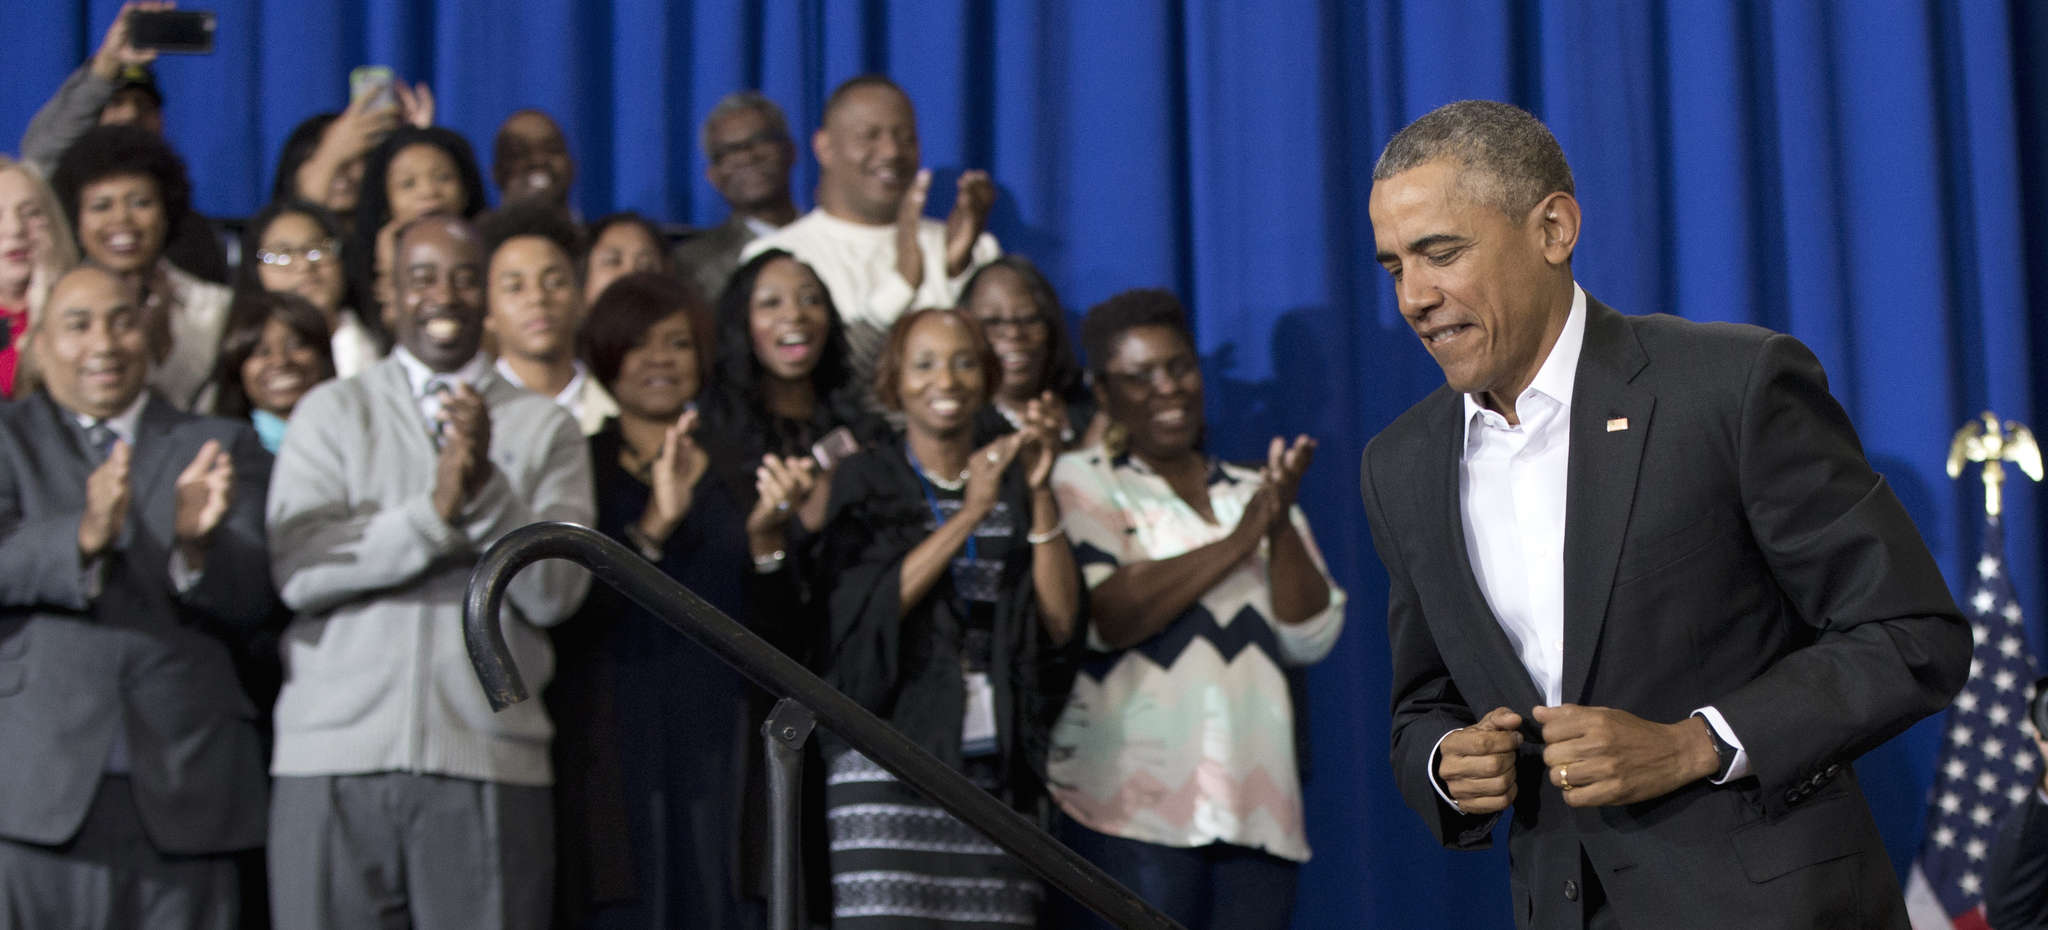 Following up on his State of the Union address, President Obama in Baton Rouge, La.